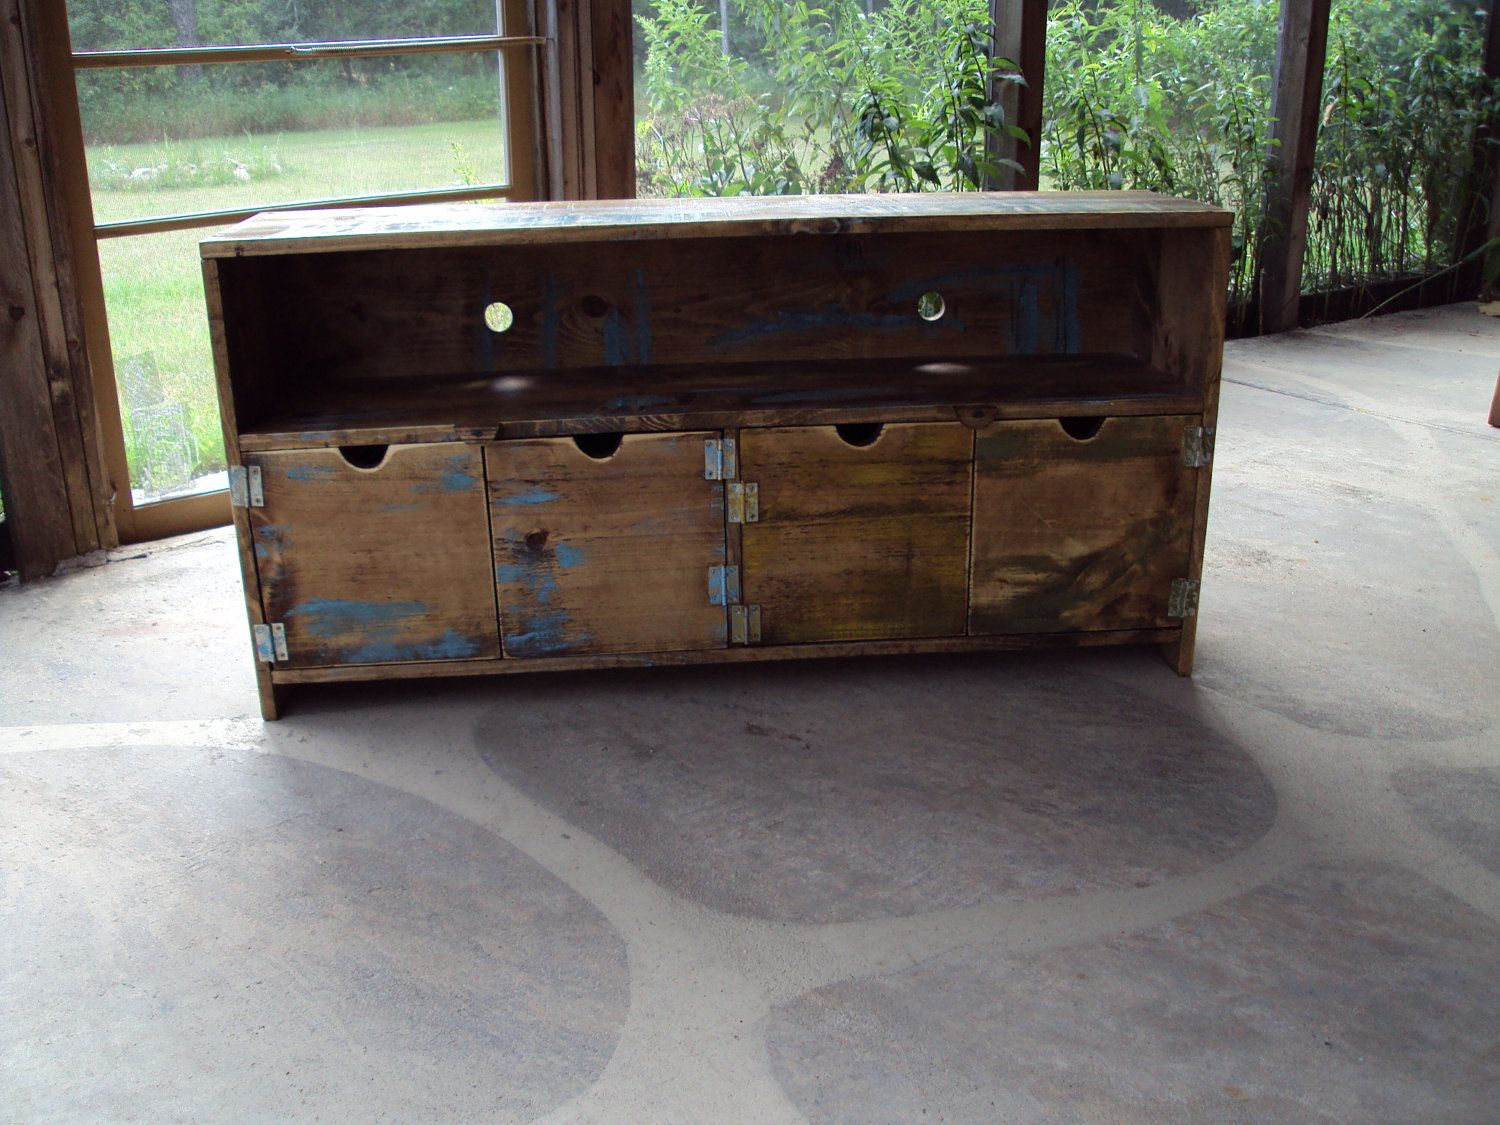 48 Inch Wide Old Barn Wood Look Tv Cabinet Storage Bench Shabby Chic